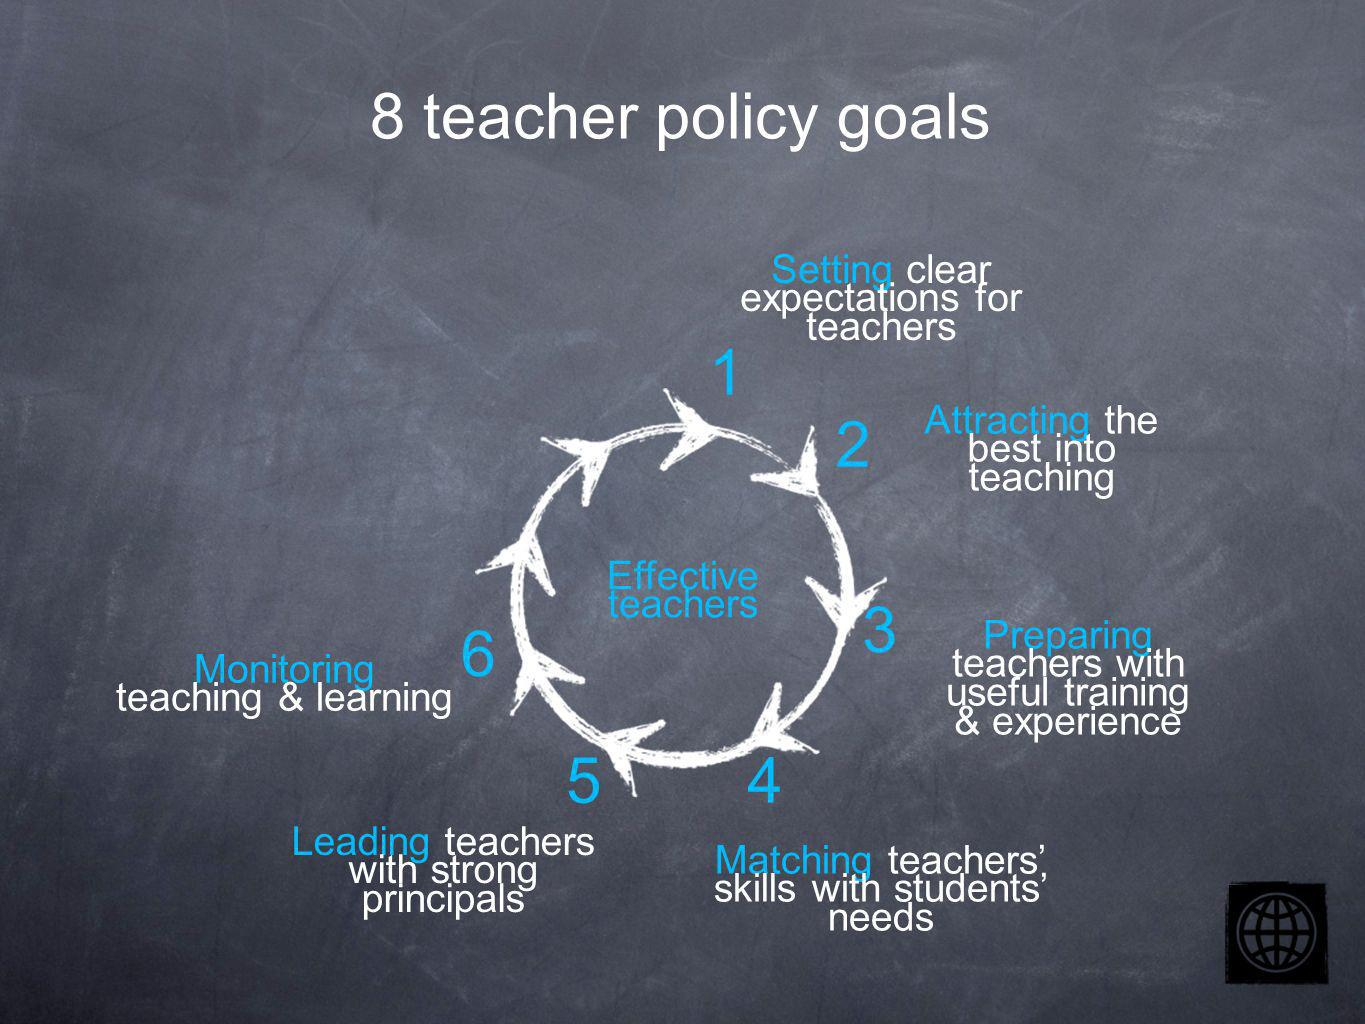 Setting clear expectations for teachers Attracting the best into teaching Preparing teachers with useful training & experience Effective teachers Matching teachers skills with students needs Leading teachers with strong principals Monitoring teaching & learning 2 3 4 1 5 6 8 teacher policy goals